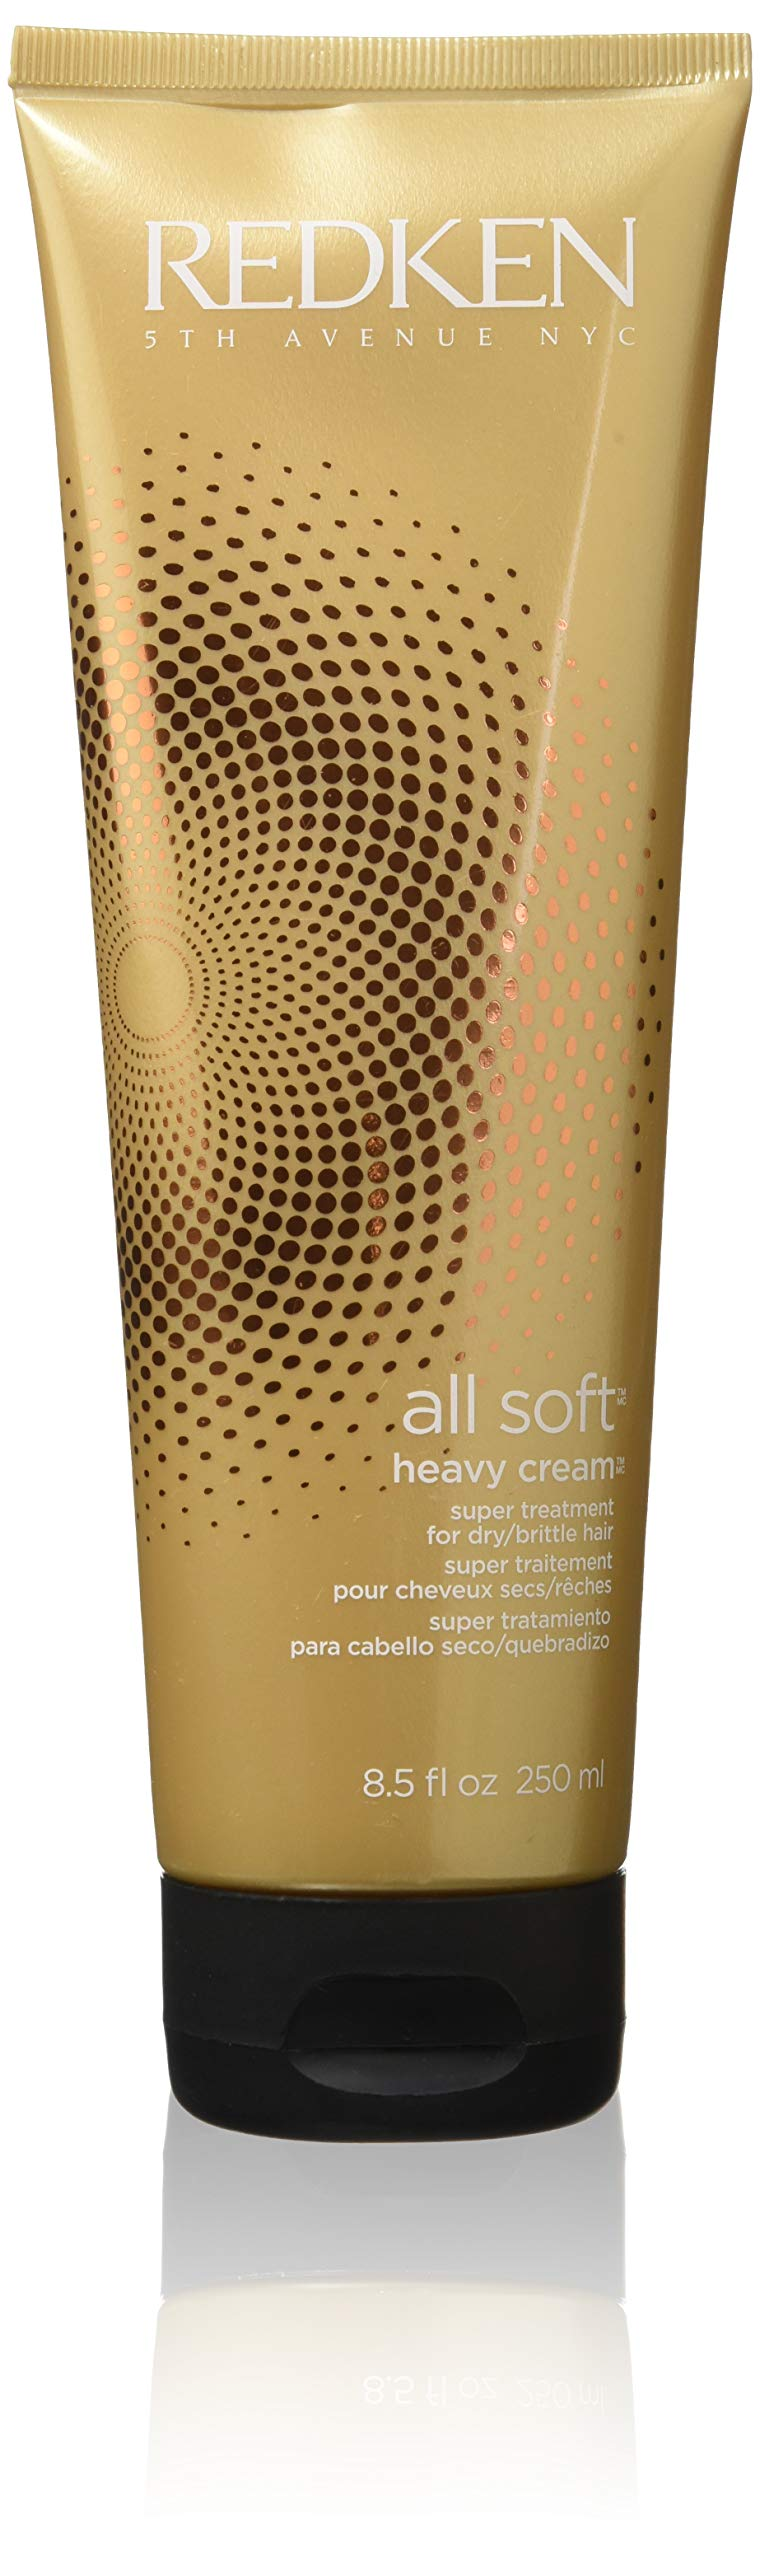 Redken All Soft Heavy Cream, 8.5 oz by REDKEN